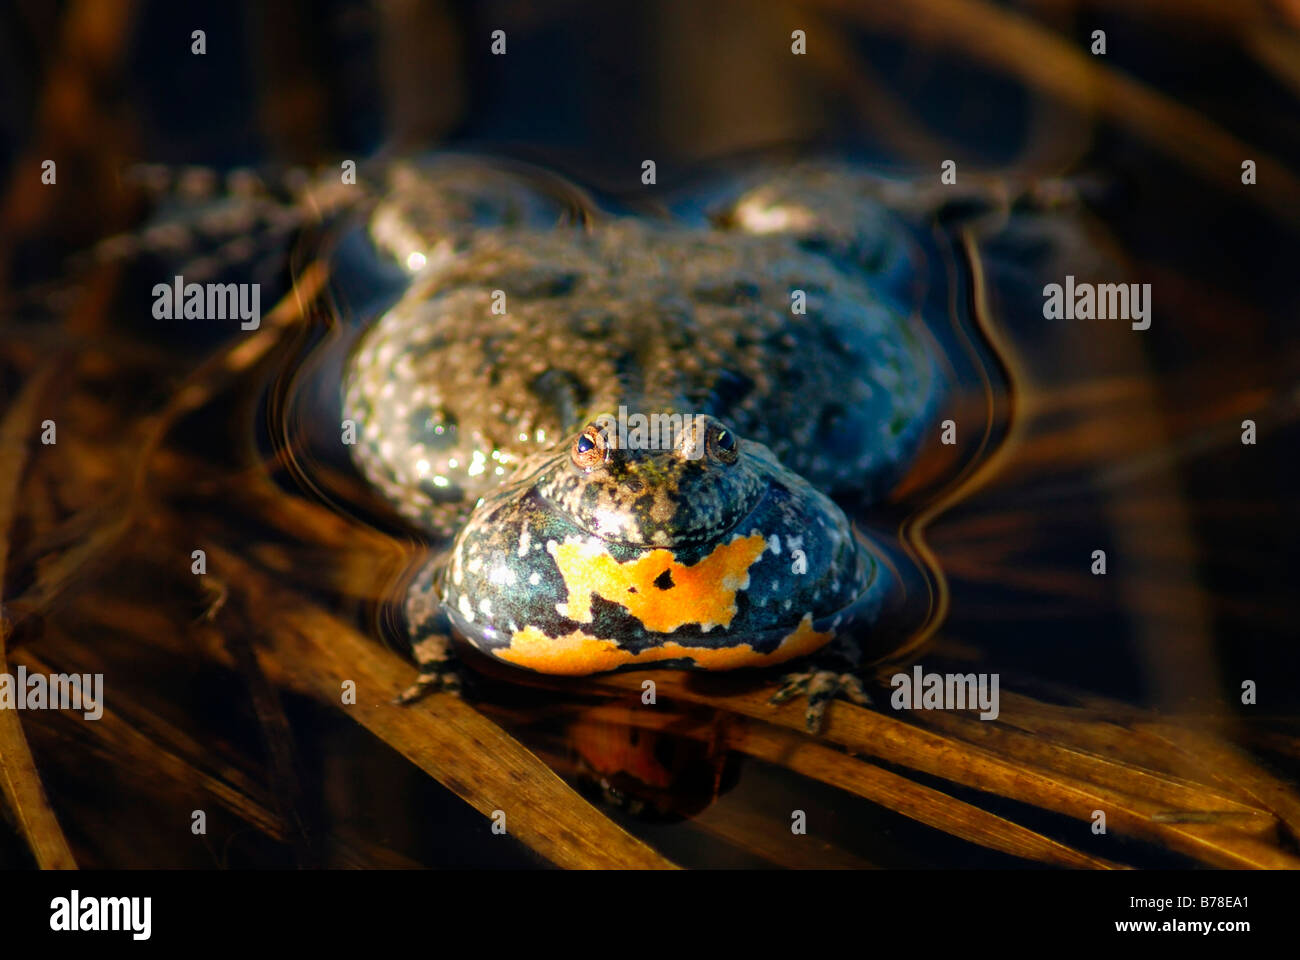 European Fire-bellied Toad (Bombina bombina) Stock Photo